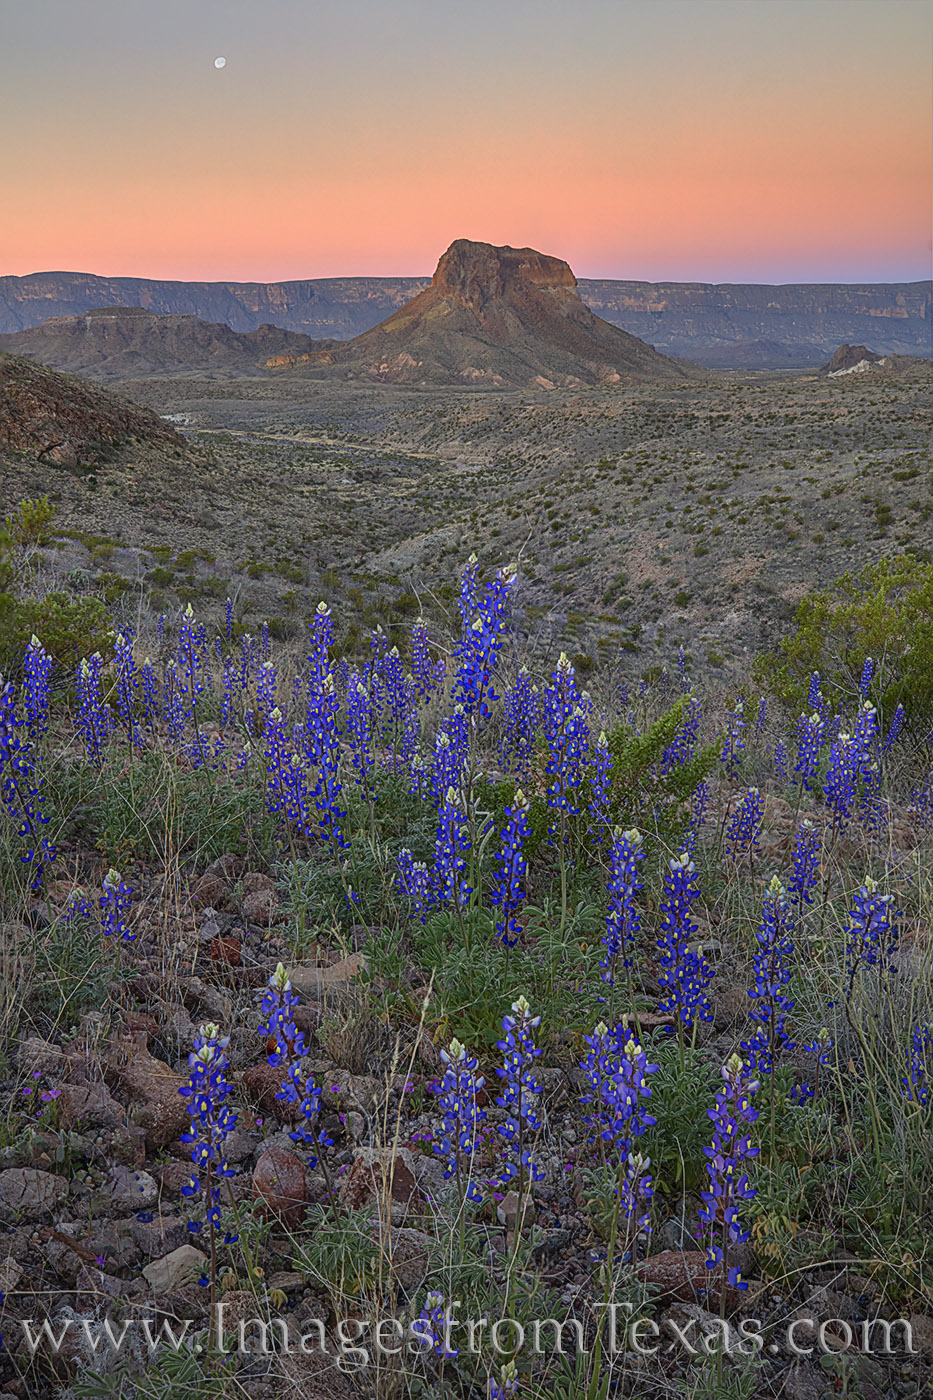 cerro castellan, big bend, big bend national park, moon, chihuahuan desert, sunrise, moonset, bluebonnets, wildflowers, texas bluebonnets, texas wildflowers, february, spring, bloom, photo